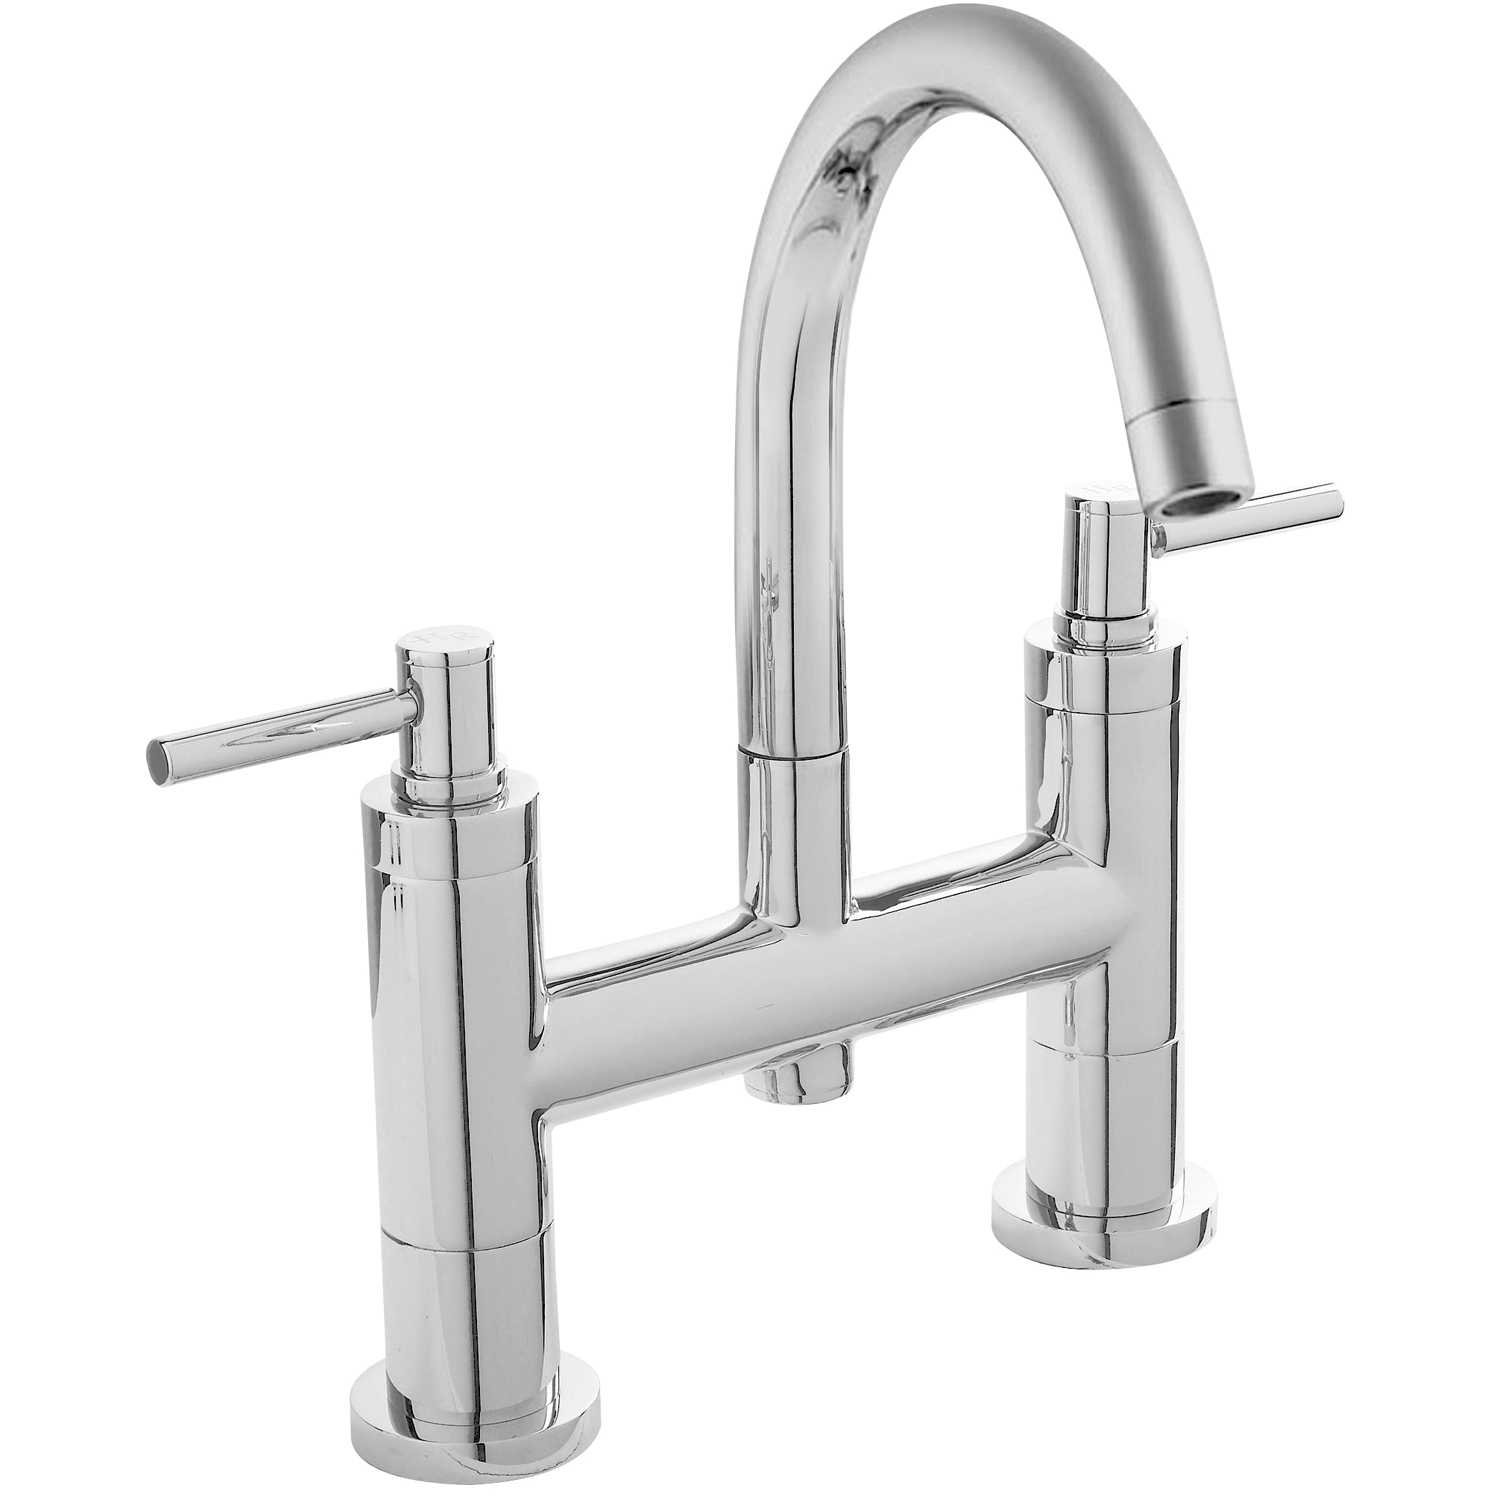 Hudson Reed Tec Lever Basin Mixer Tap and Bath Filler Tap, Chrome